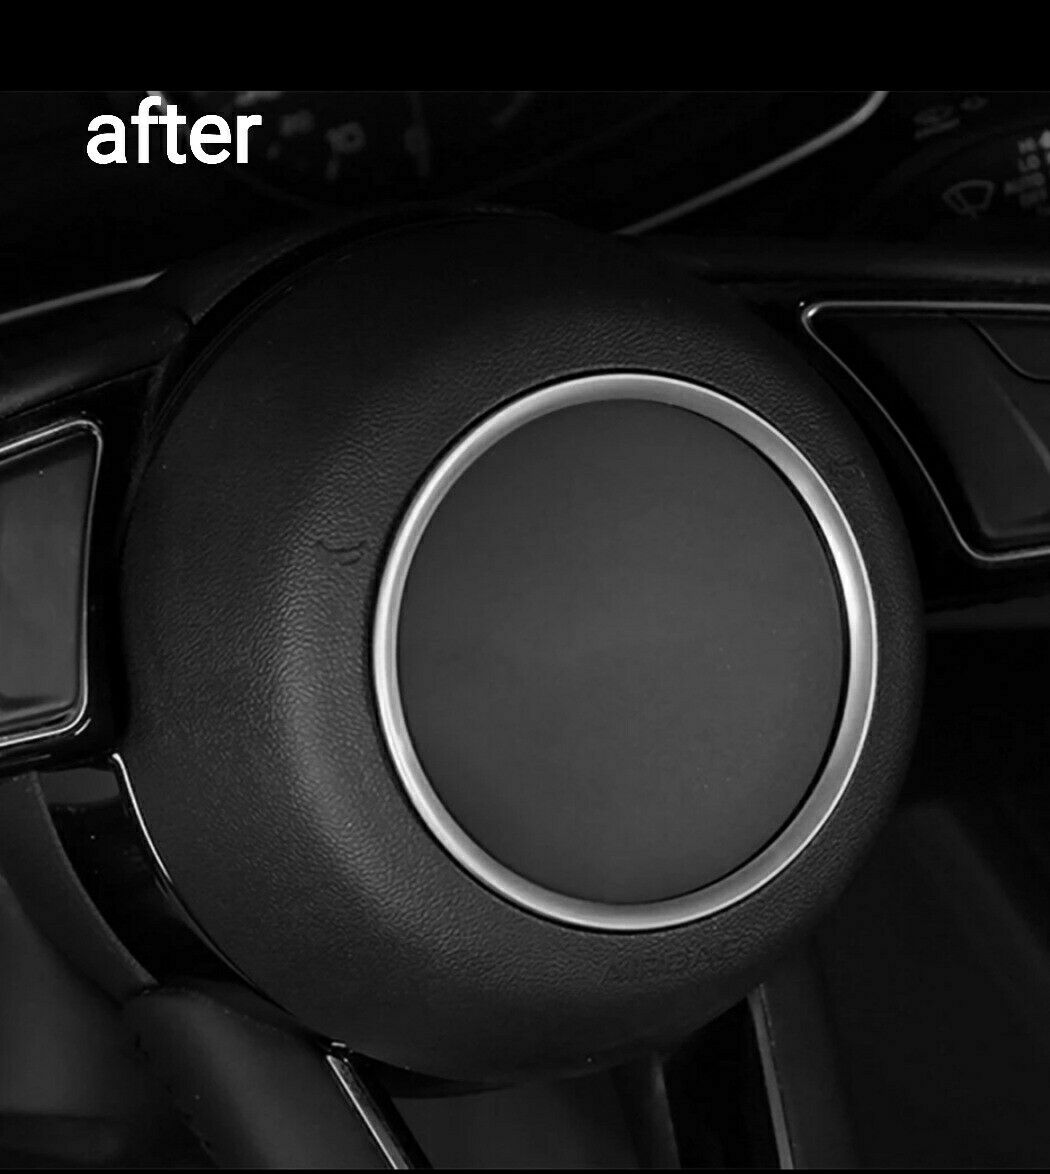 Steering Wheel Cover Fits Audi A3 8p Real Leather Seam White For Sale Ebay